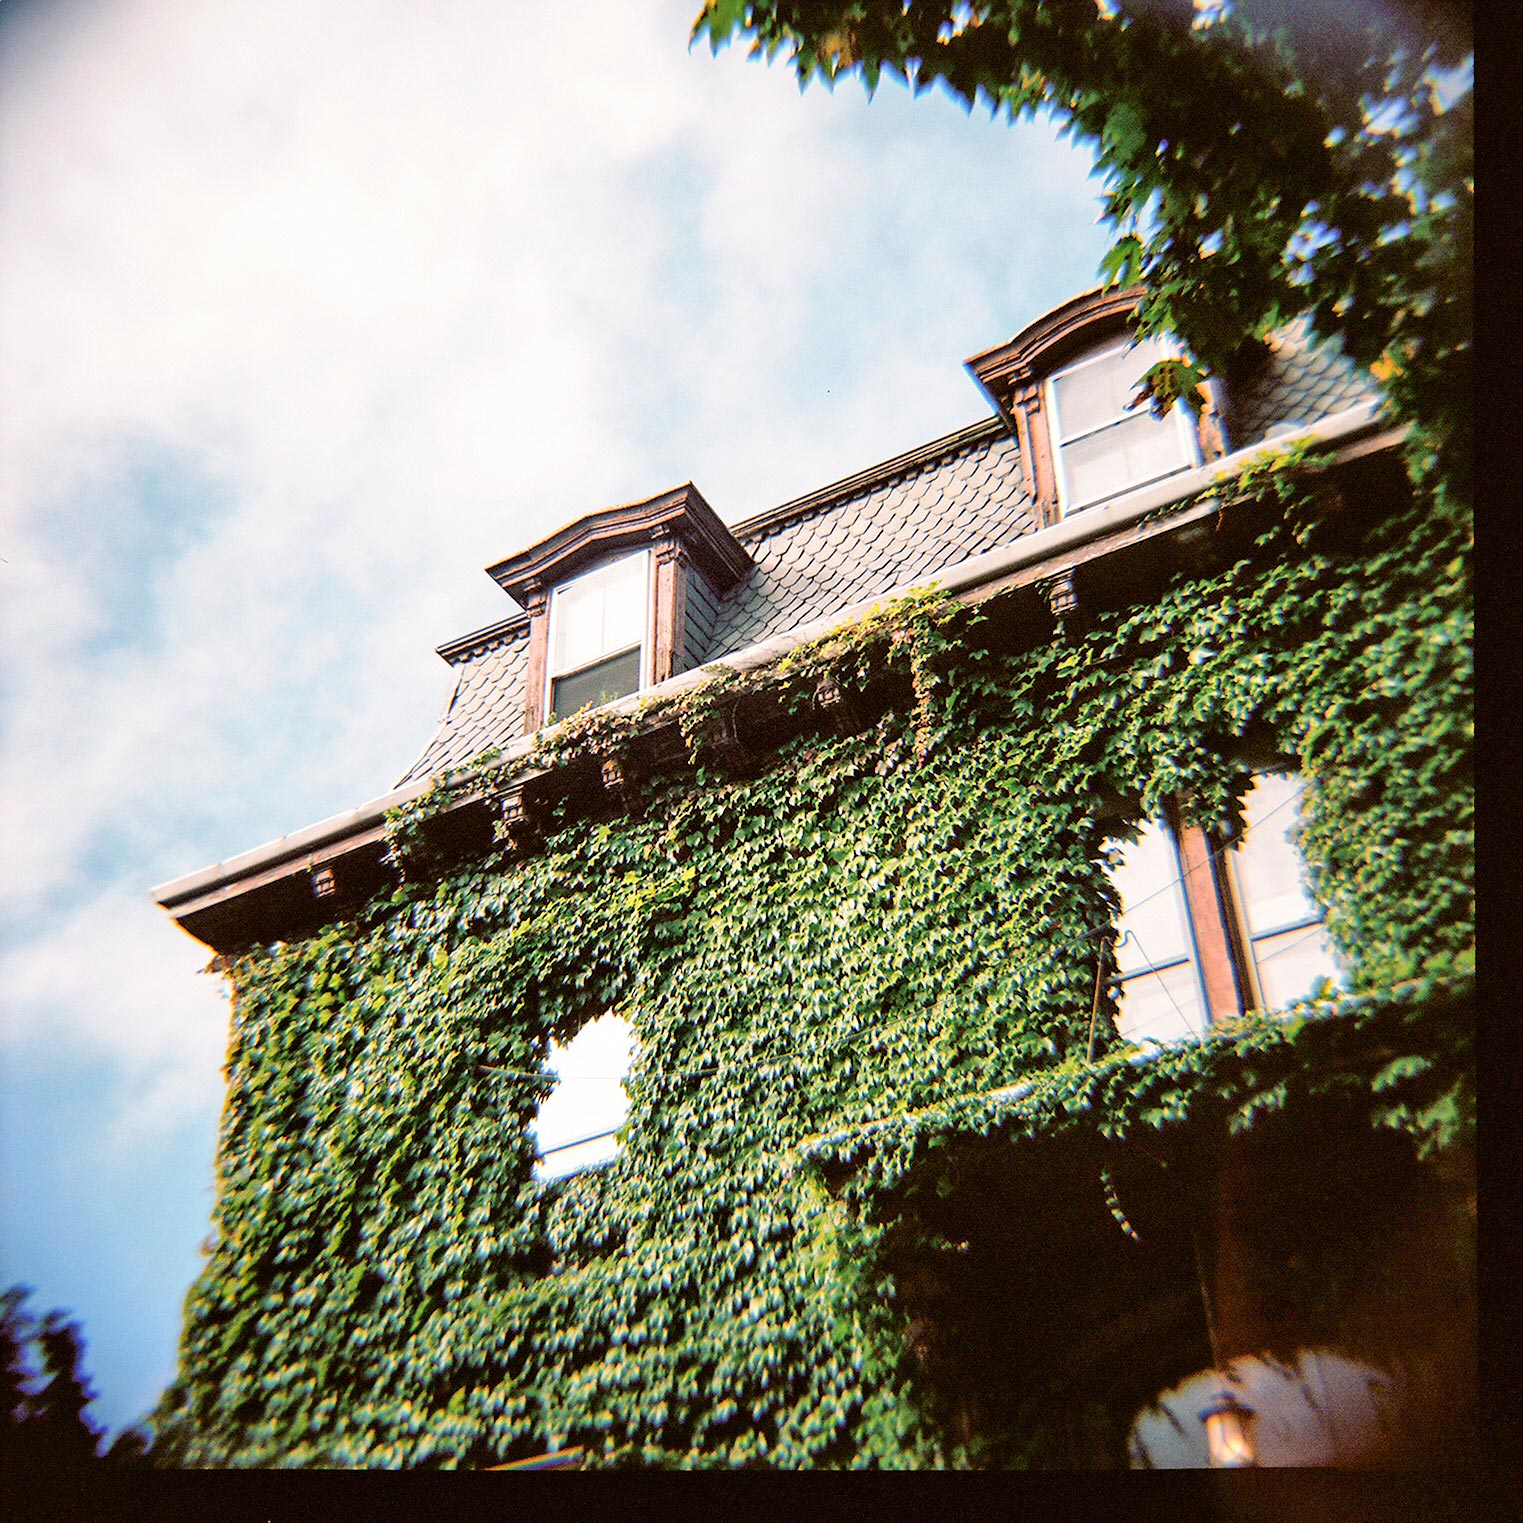 portland-ivy-covered-building.jpg